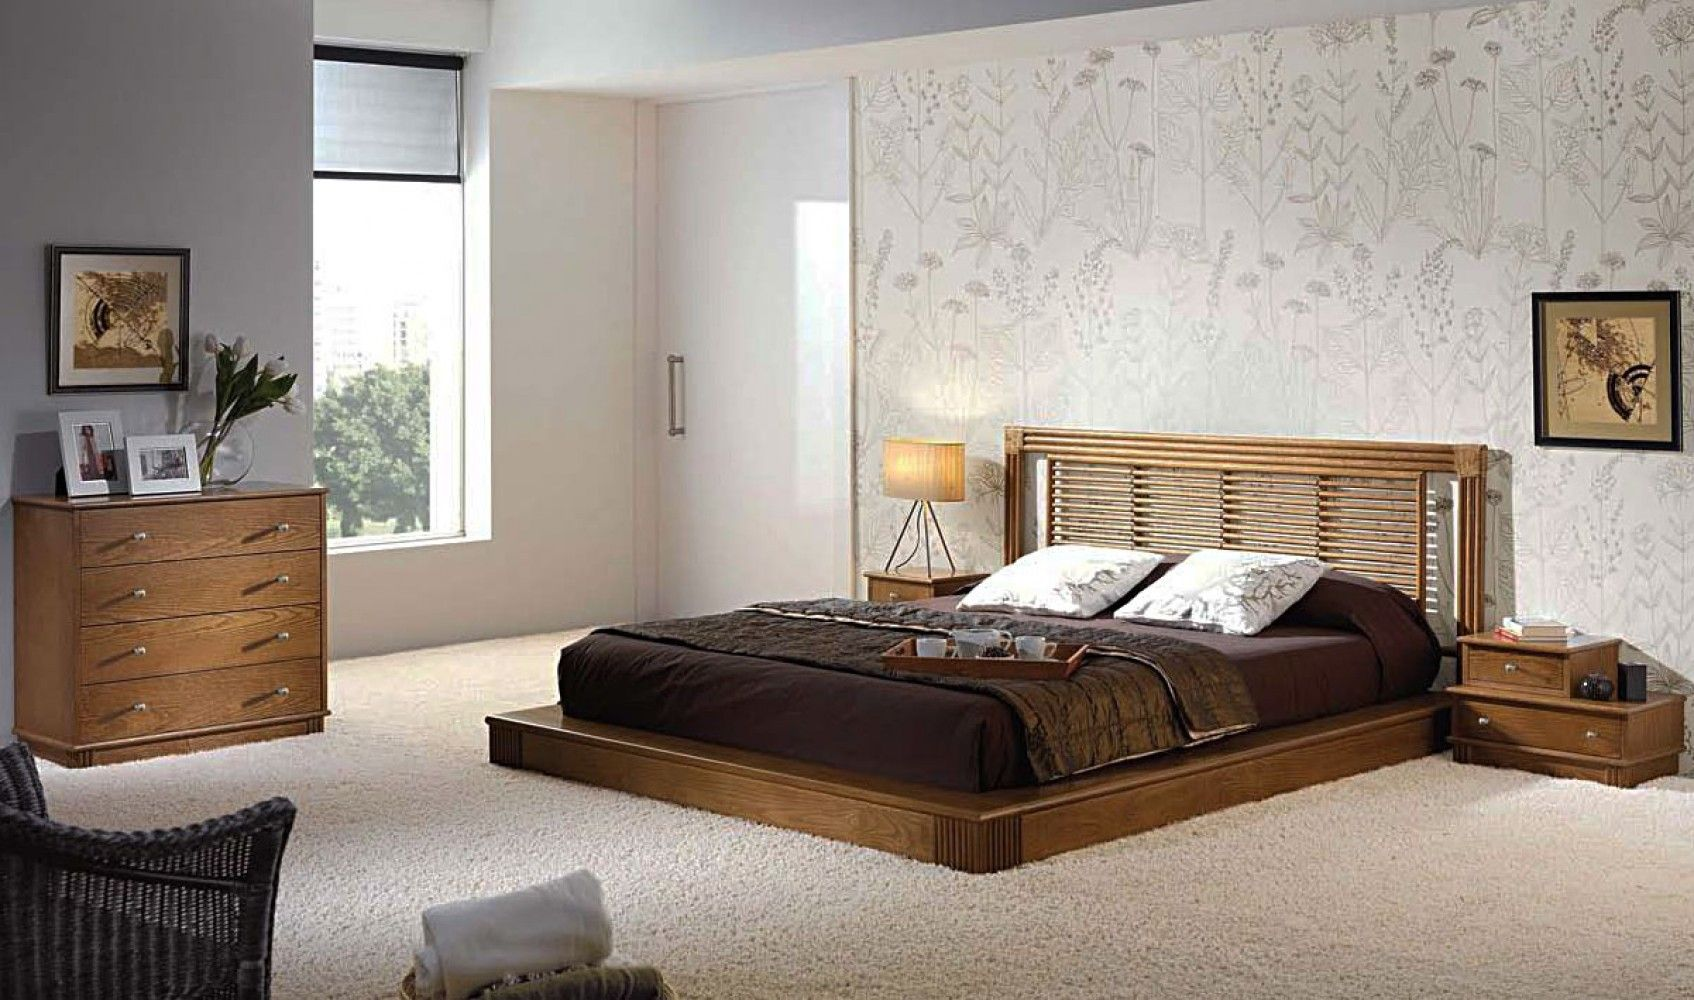 Modele Chambre A Coucher Furniture Home Decor Home